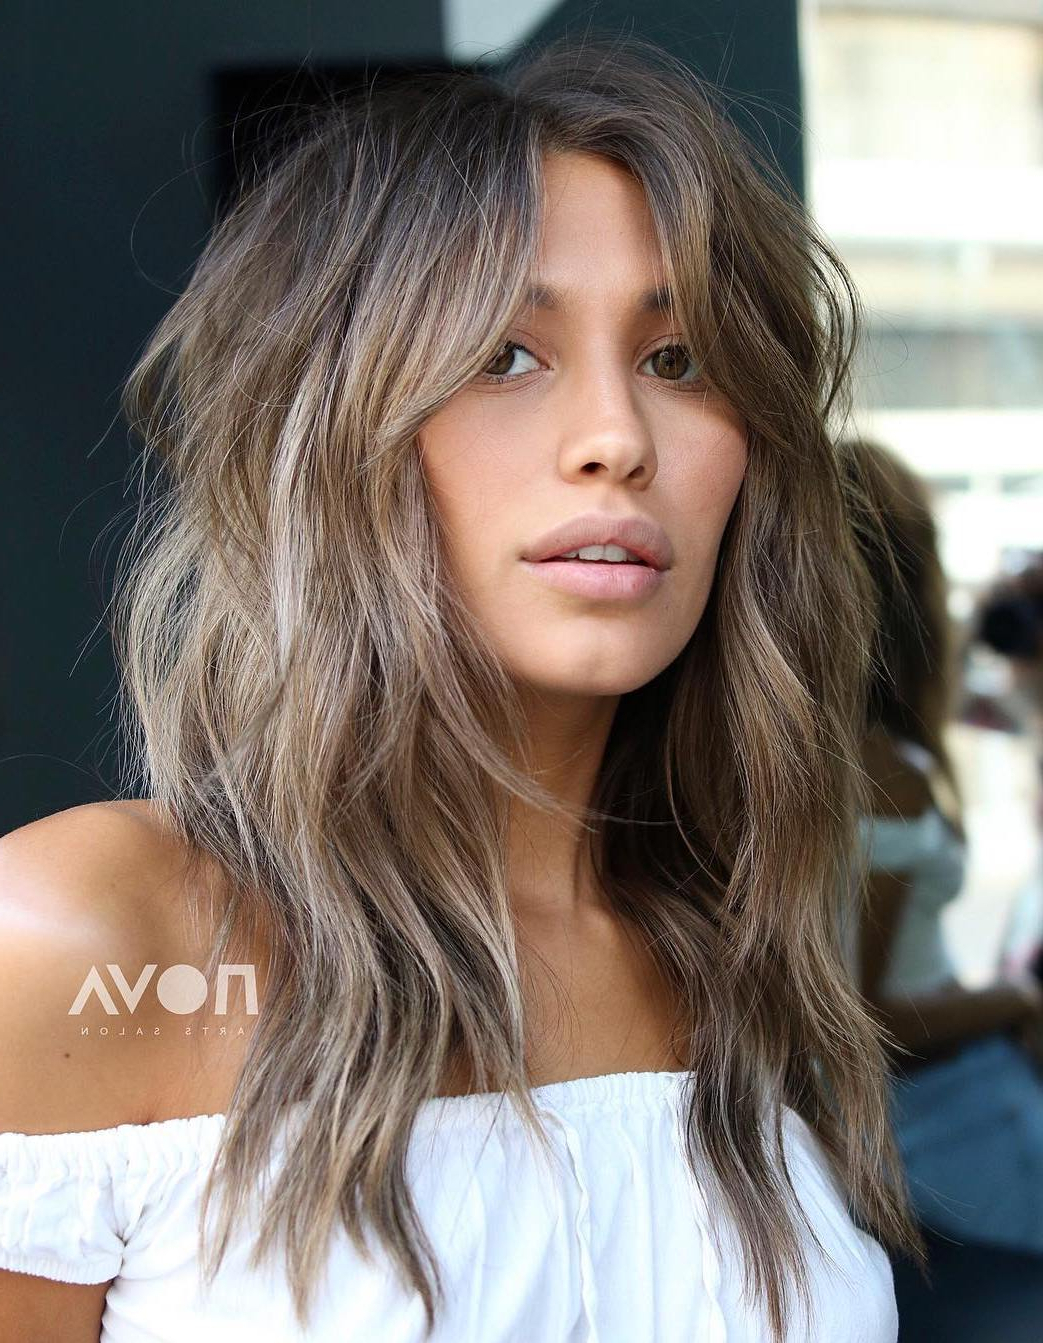 40 Modern Shag Haircuts For Women To Make A Splash Regarding 2019 Long Side Parted Haircuts With Razored Layers (View 2 of 20)